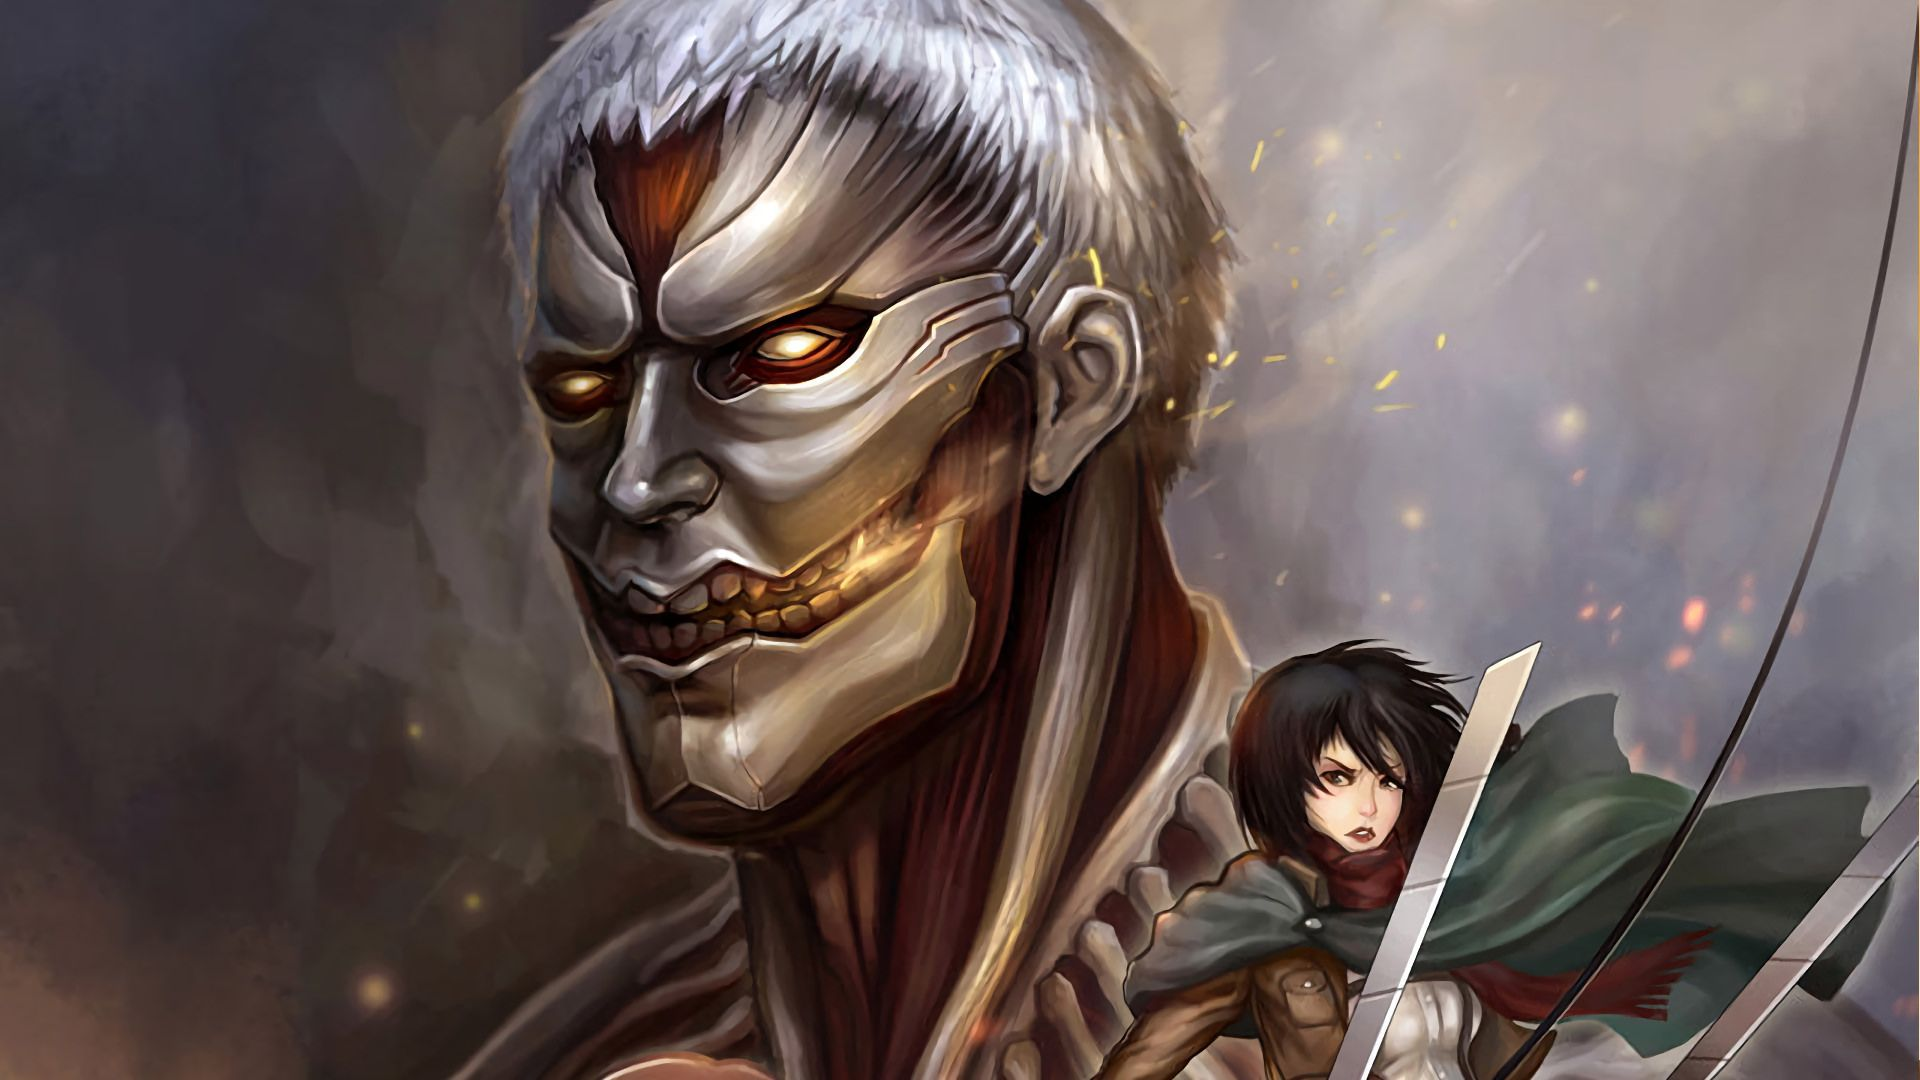 Armored Titan Wallpapers Wallpaper Cave